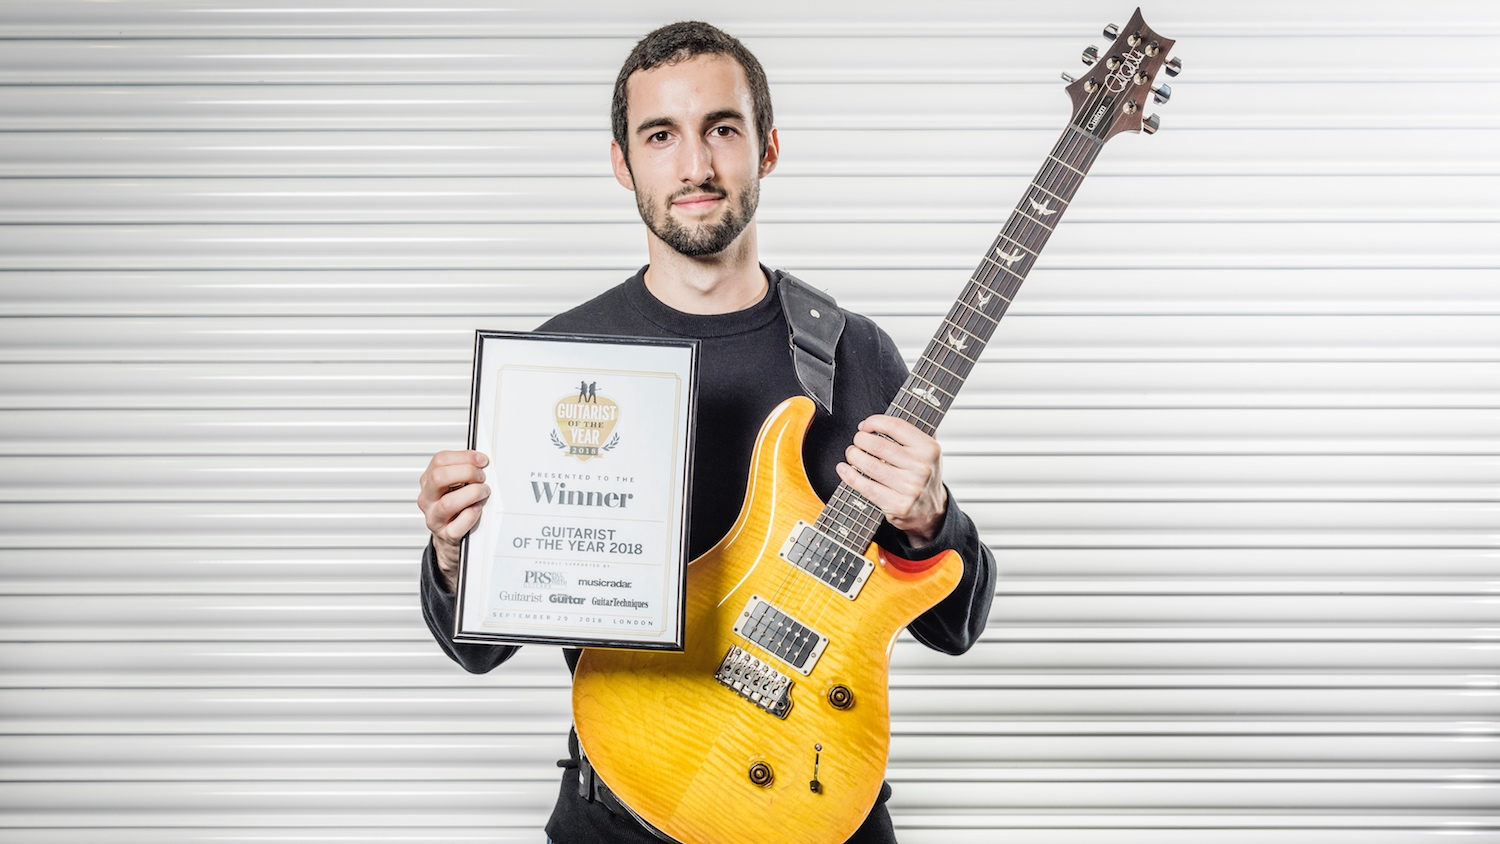 Want to win Guitarist of the Year 2019? Last year's winner tells you